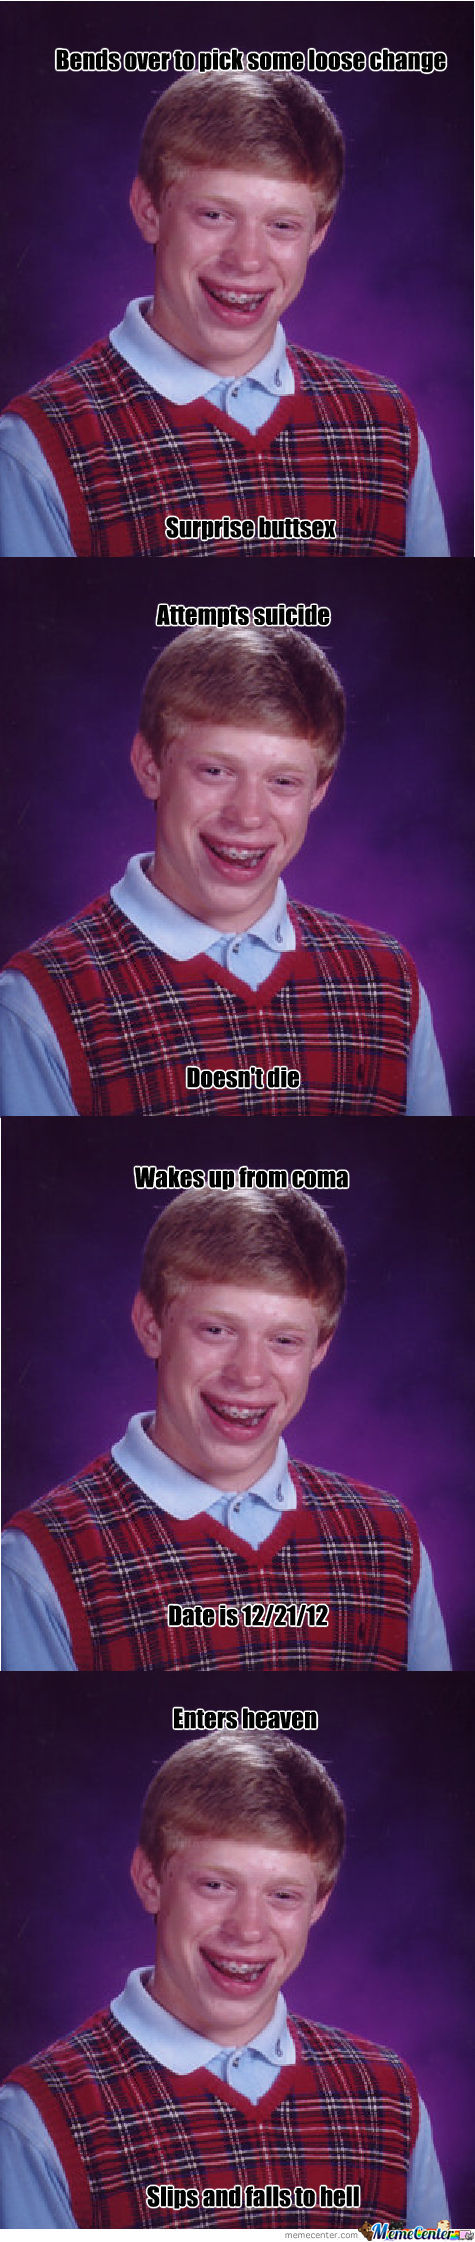 More Bad Luck Brian